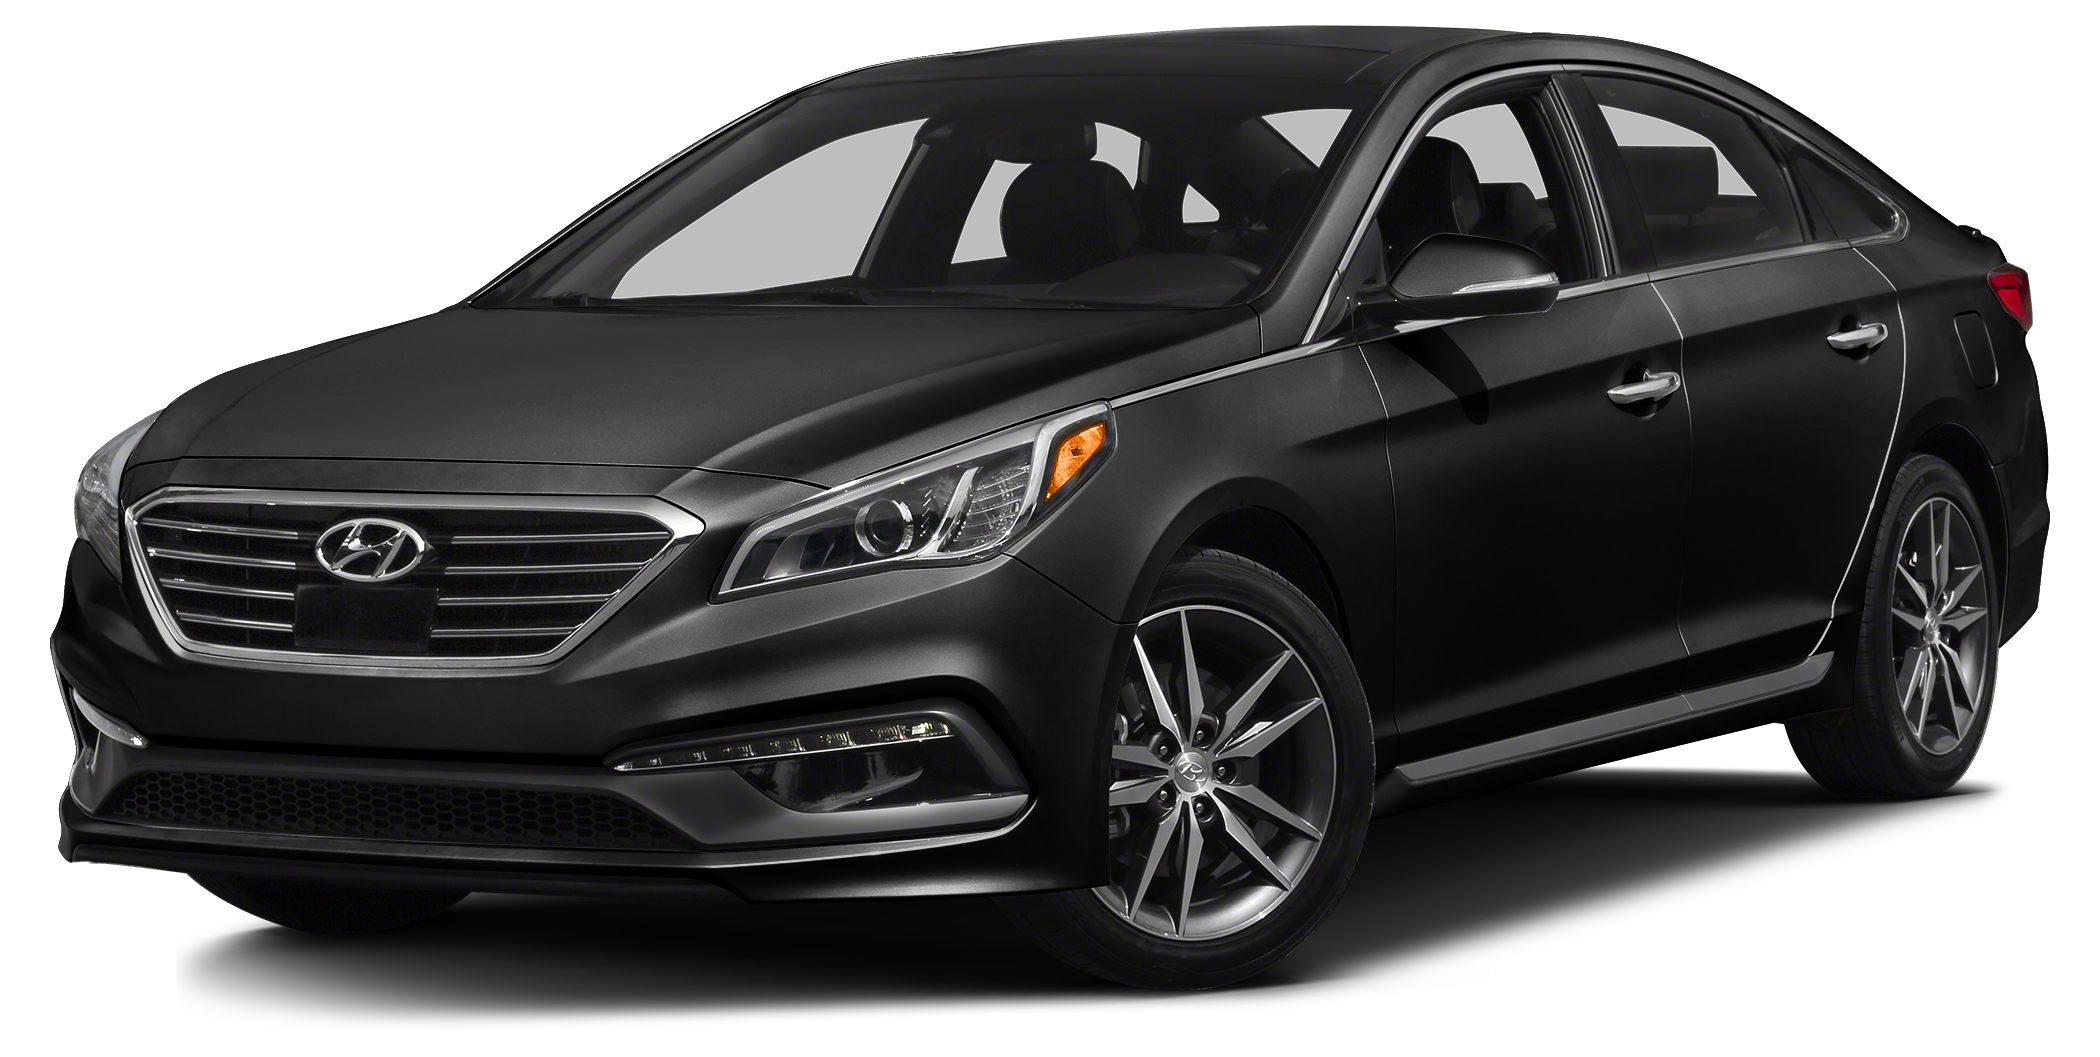 2015 Hyundai Sonata SE 24L SE trim FUEL EFFICIENT 37 MPG Hwy25 MPG City Bluetooth Connection